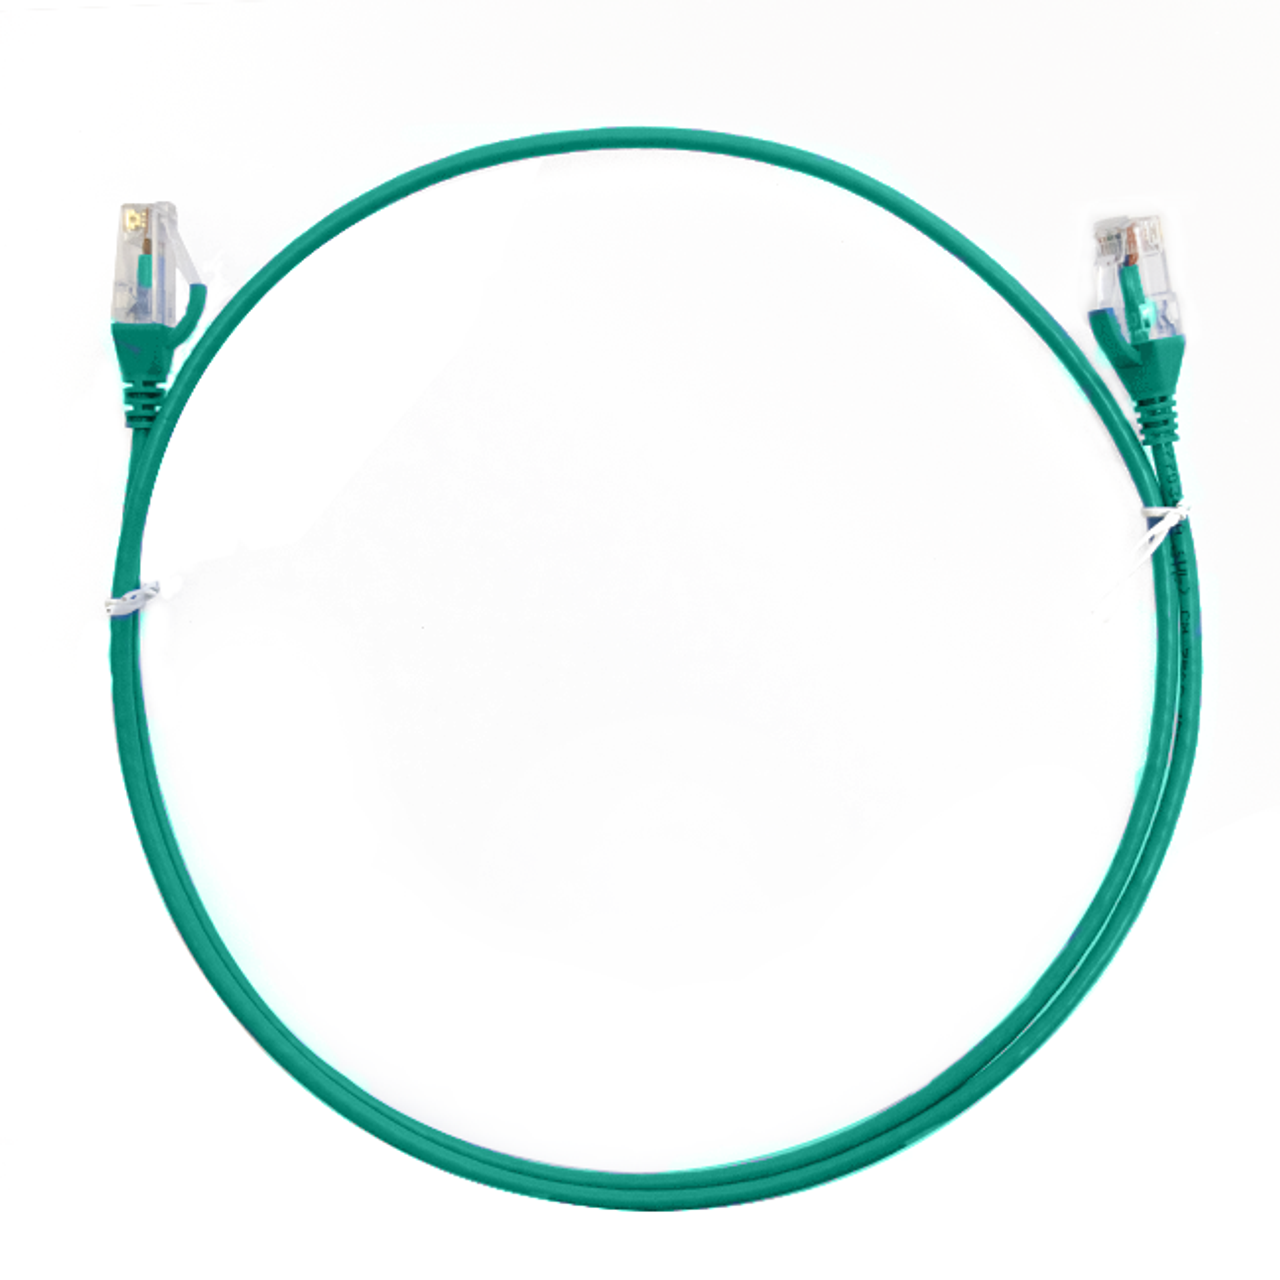 Image for 0.75m Cat 6 RJ45 RJ45 Ultra Thin LSZH Network Cables  : Green CX Computer Superstore